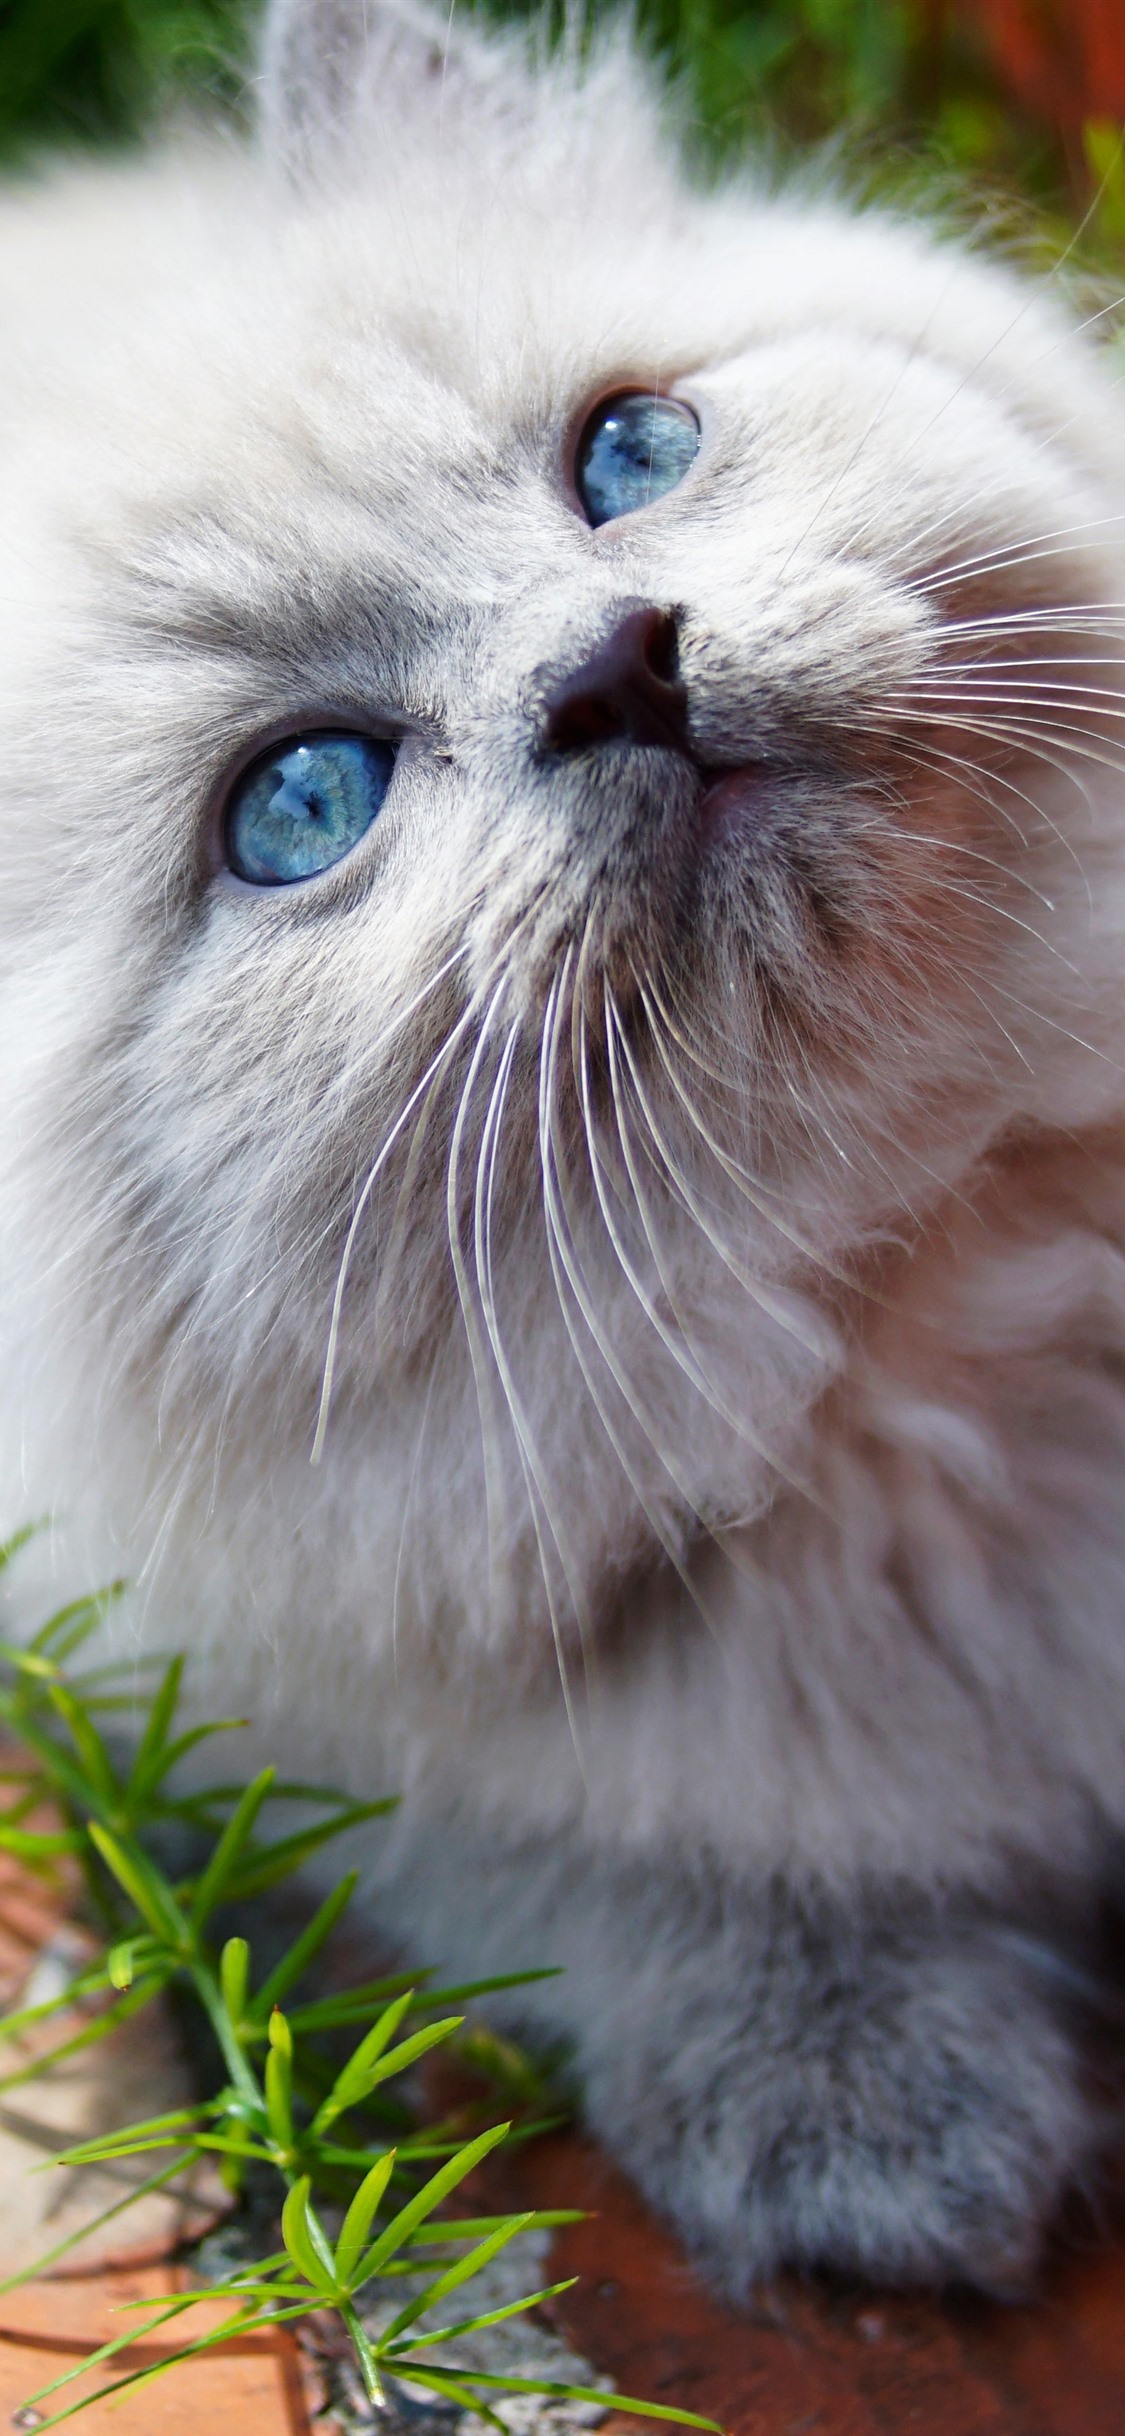 Furry White Kitten Look Up Blue Eyes 1242x2688 Iphone Xs